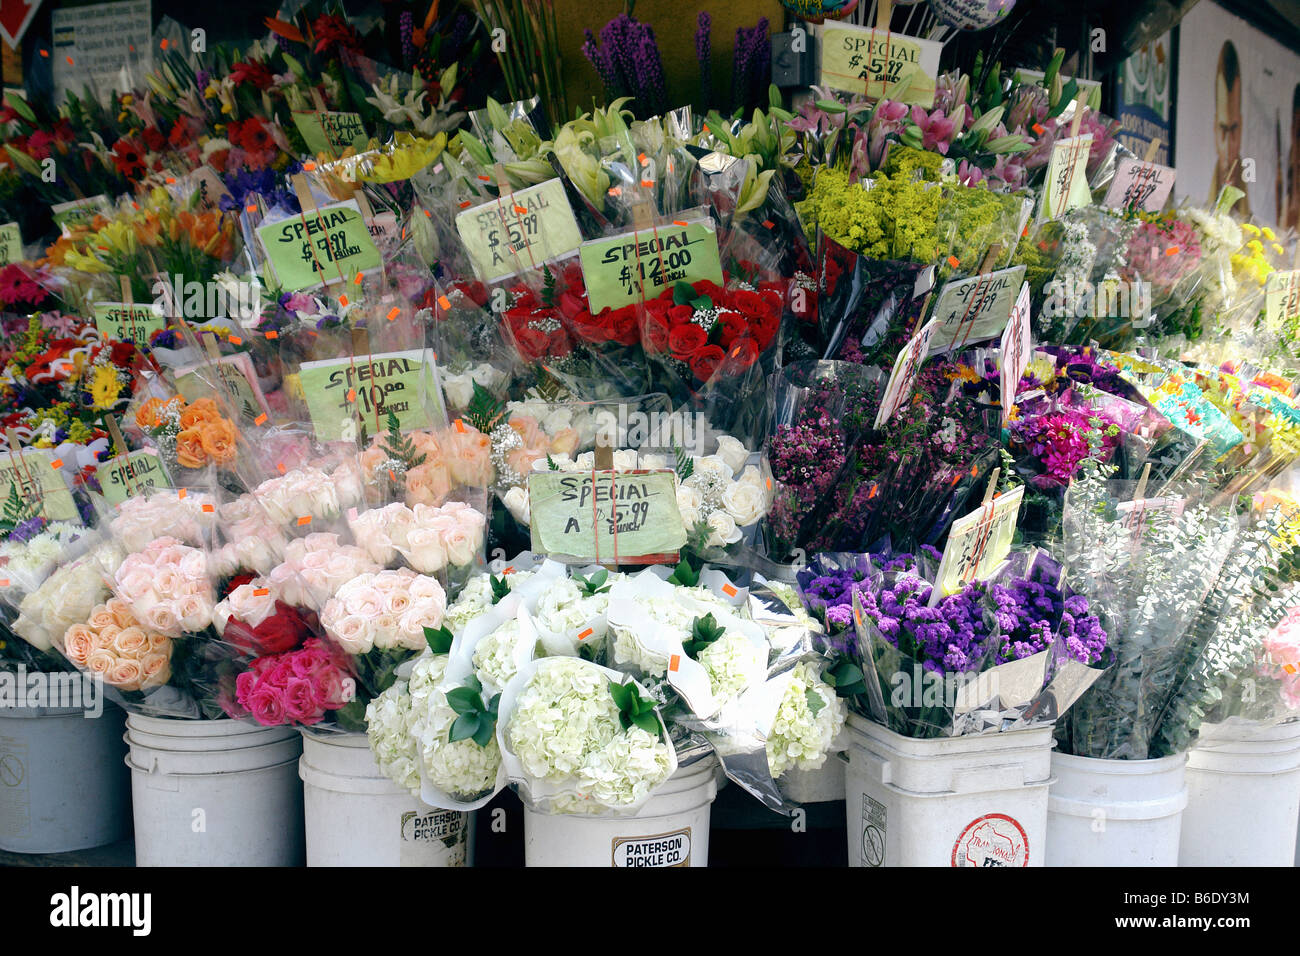 Urban Setting Of An Outdoor Flower Market Featuring A Variety Of